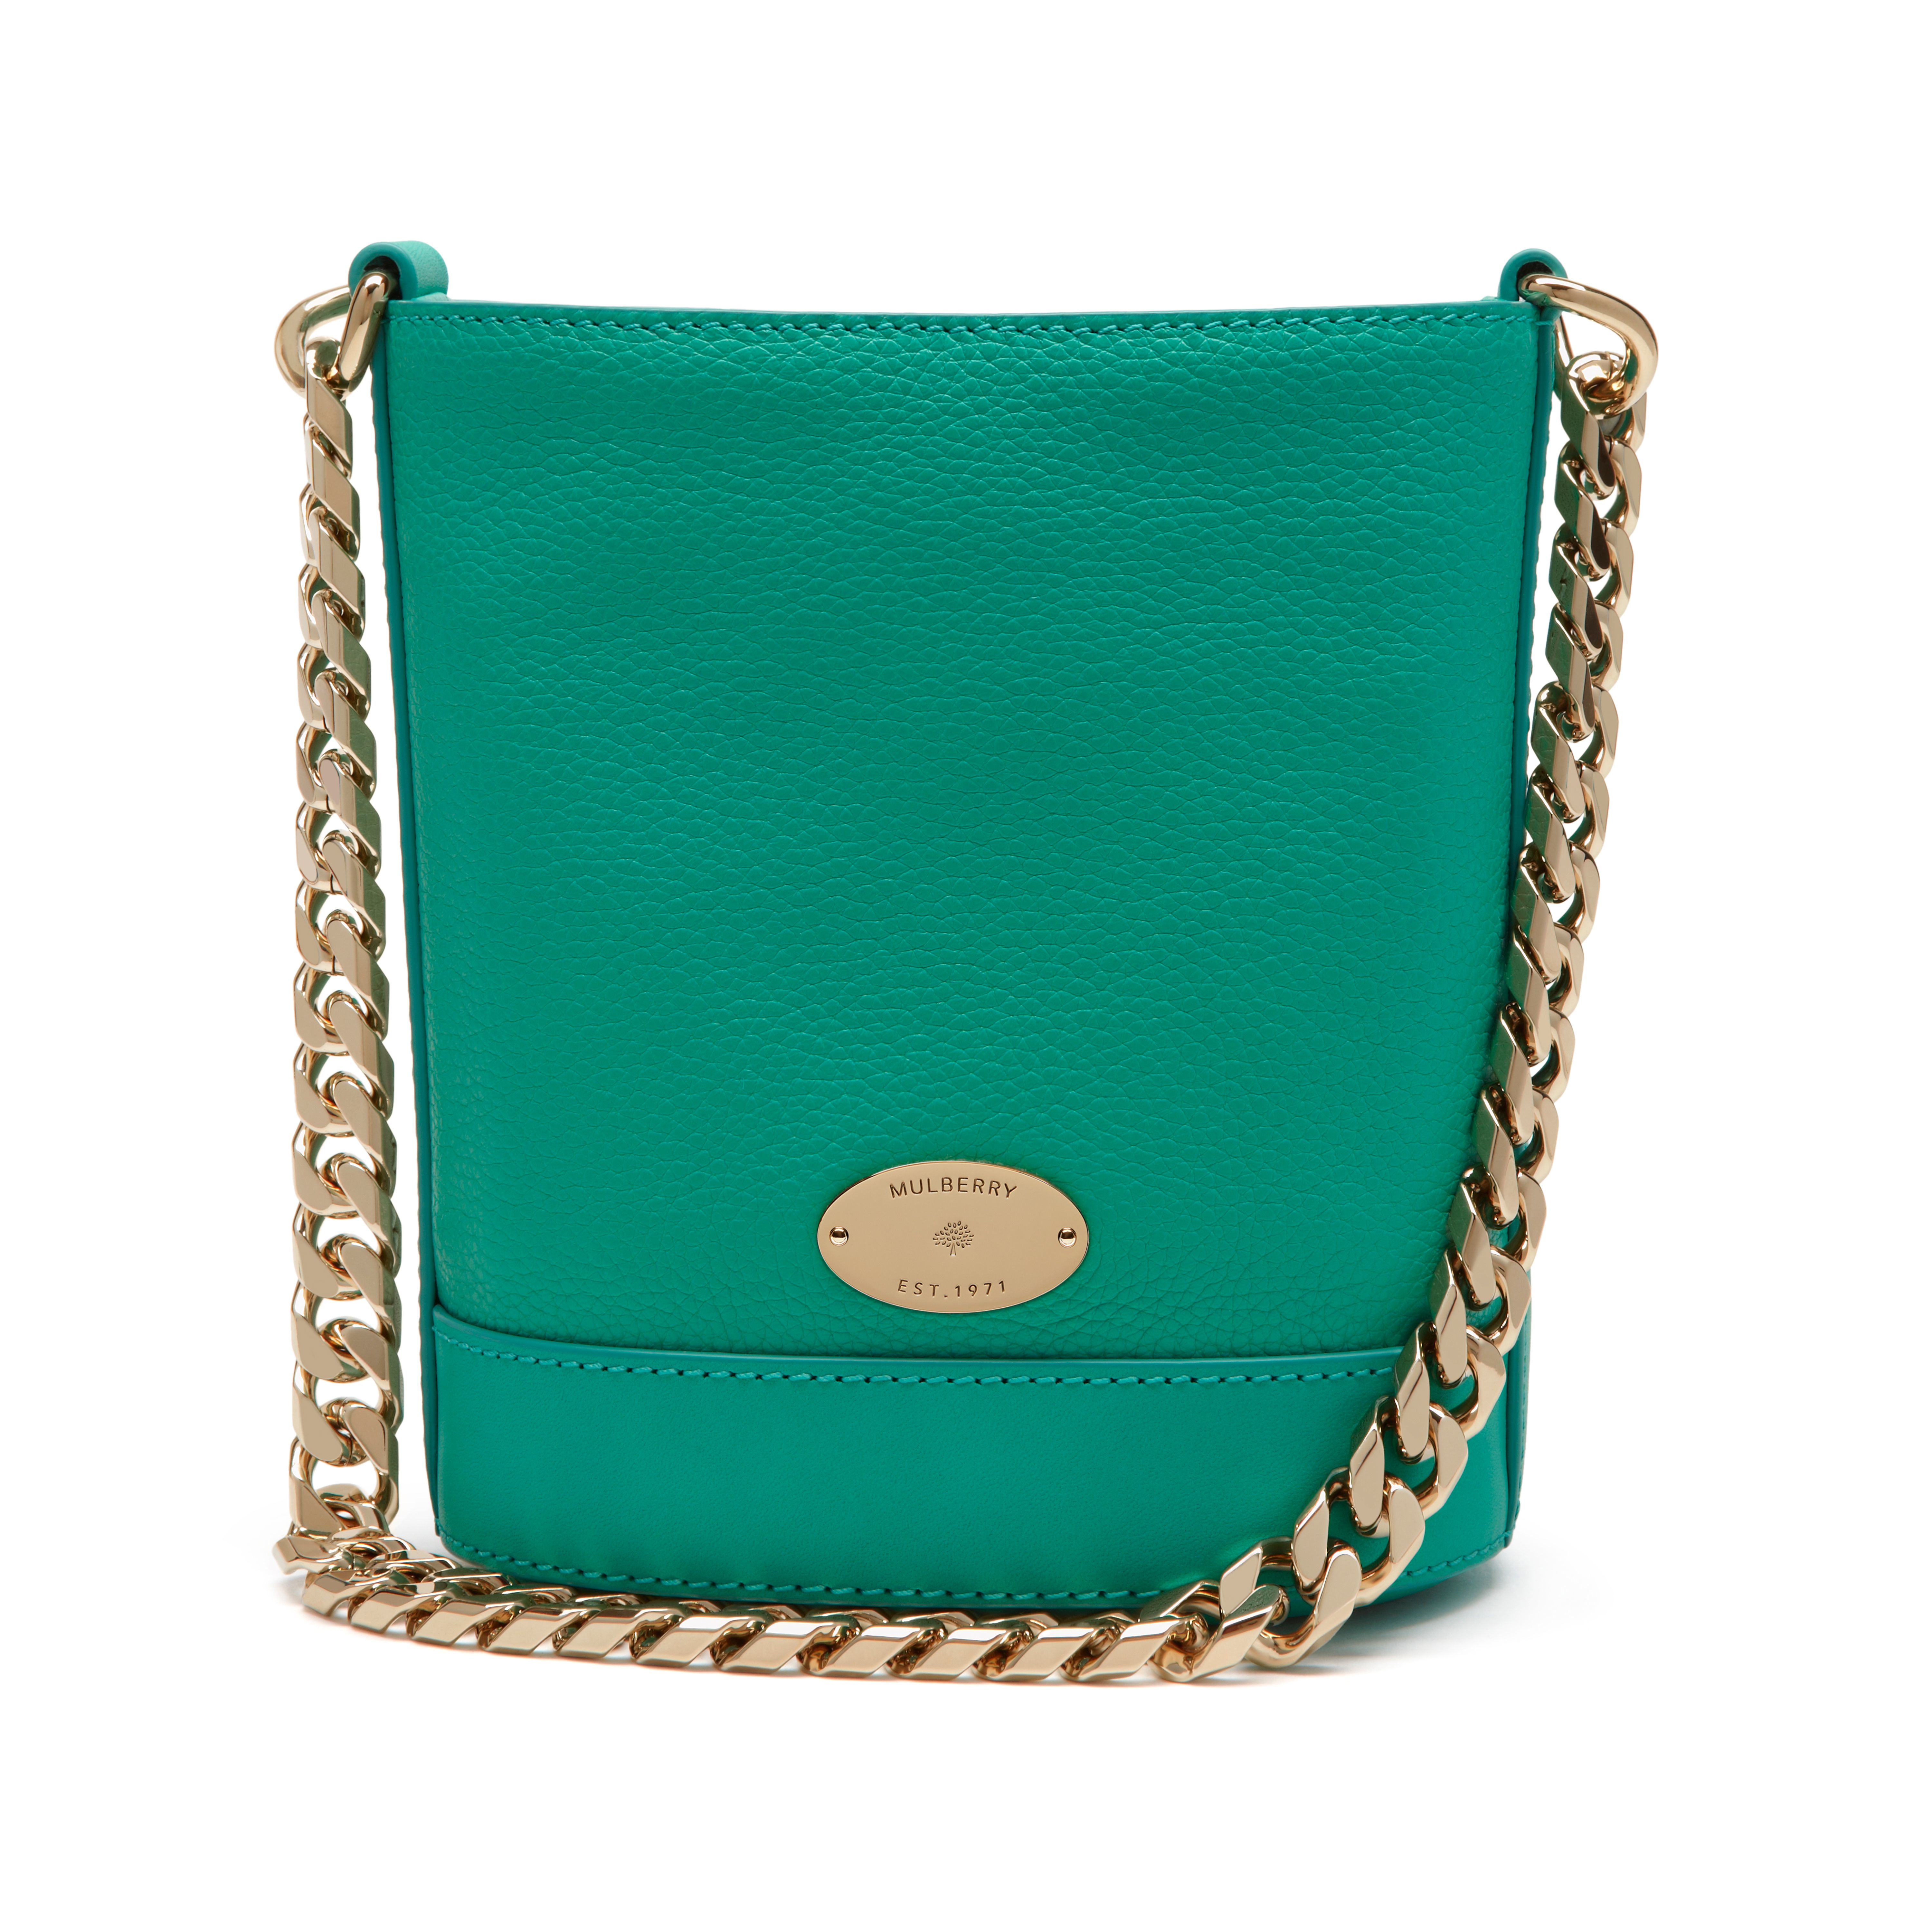 5305b78e24 Mulberry Mini Jamie Leather Bag in Green - Lyst